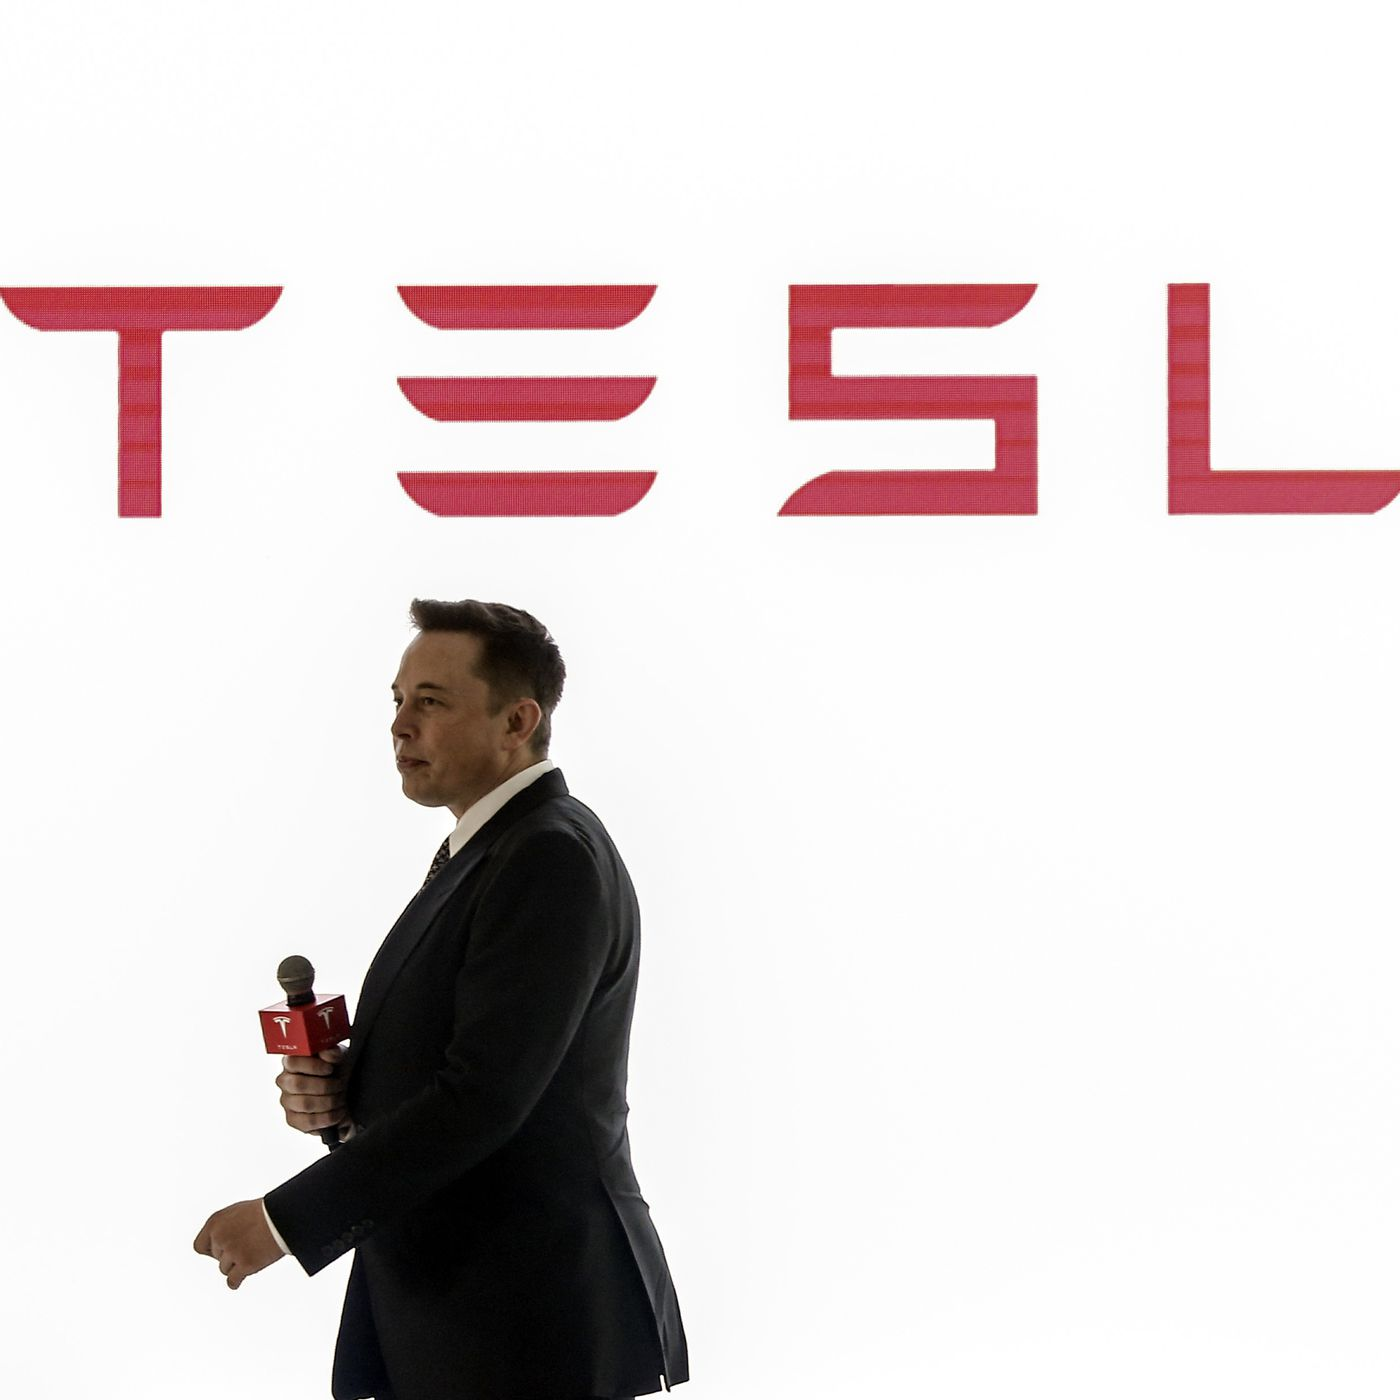 recode.net - Johana Bhuiyan - Elon Musk expects Tesla to be profitable in the second half of 2018, even as it misses Model 3 production goals